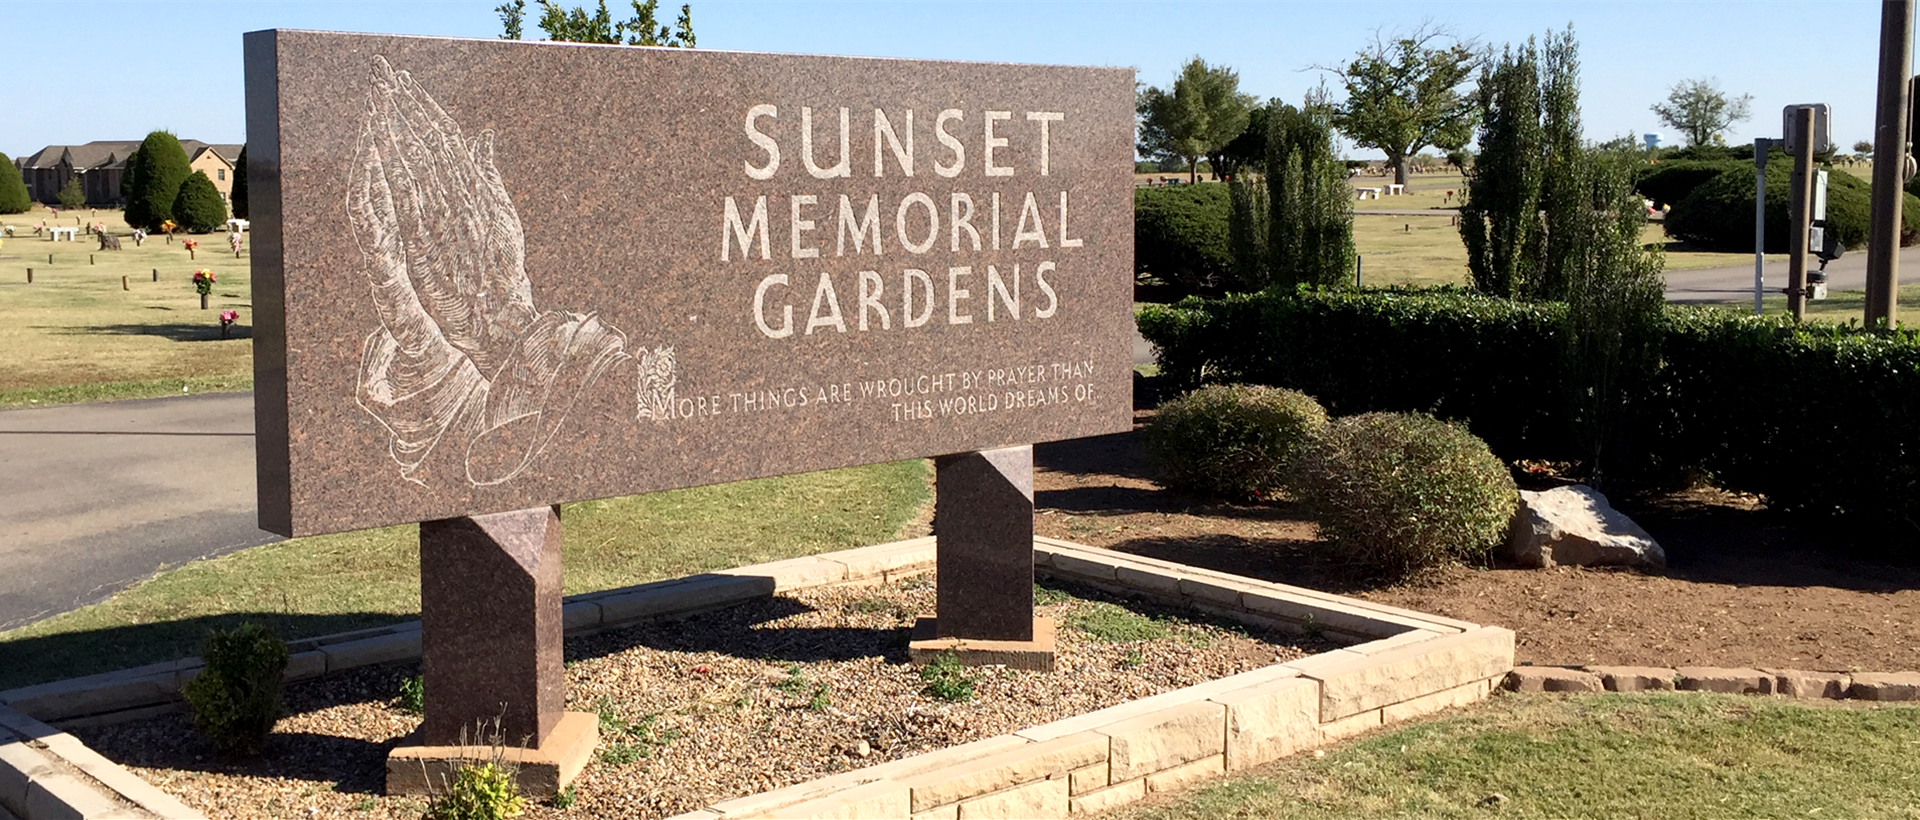 Sunset Memorial Gardens in Lawton, Oklahoma - Find A Grave Cemetery